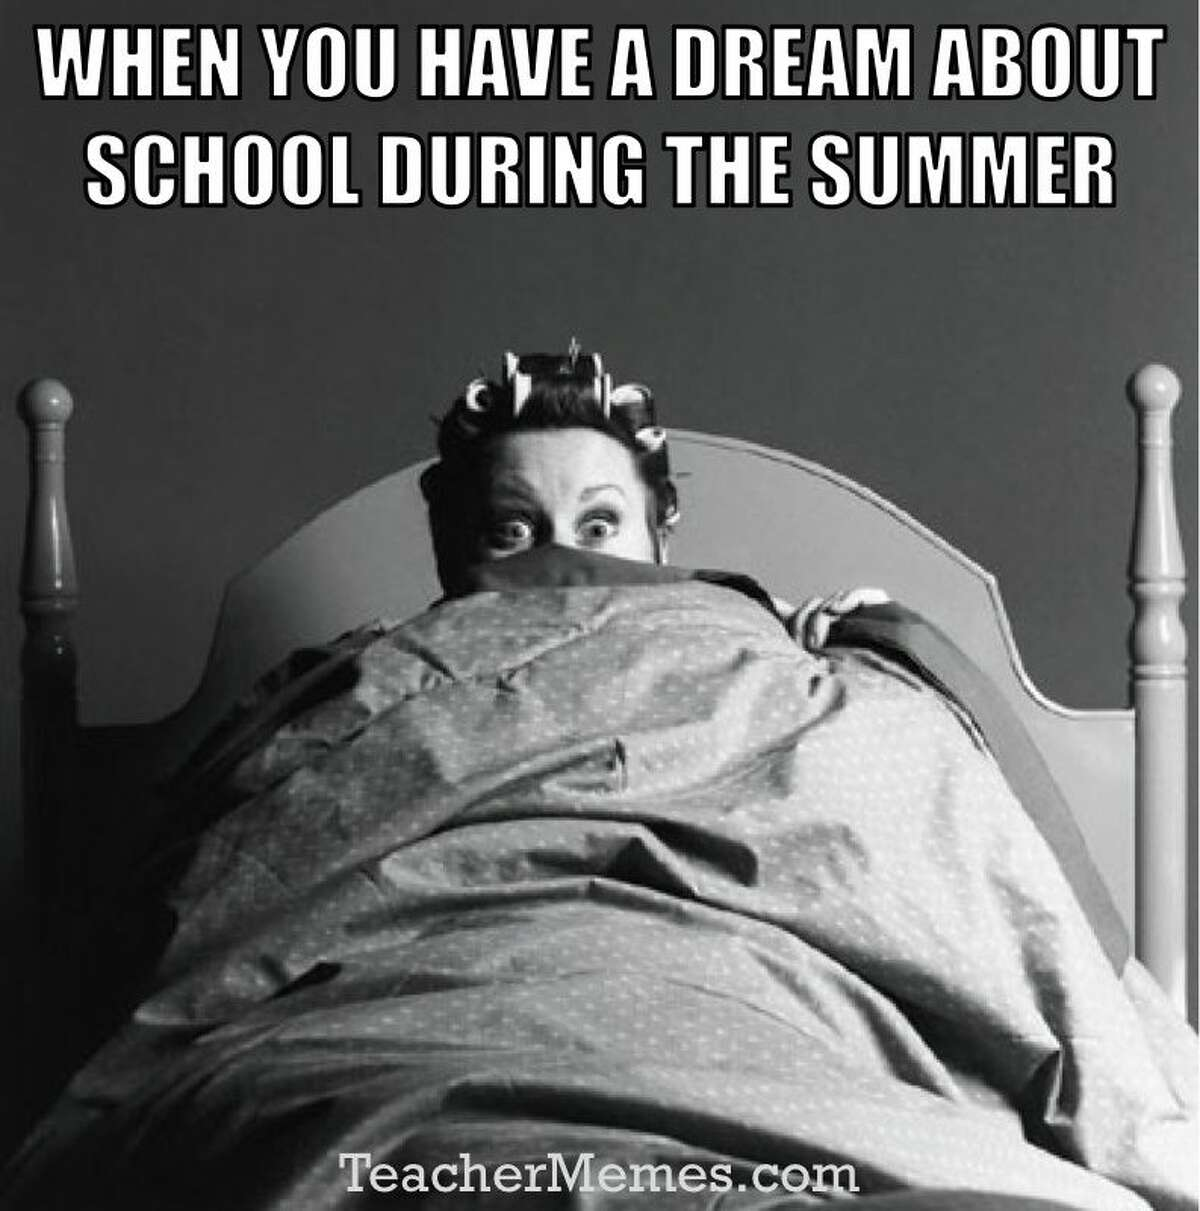 The school year is finally here so let's celebrate with some memes that capture the joy and stress of being back in the classroom, for teachers and students alike.